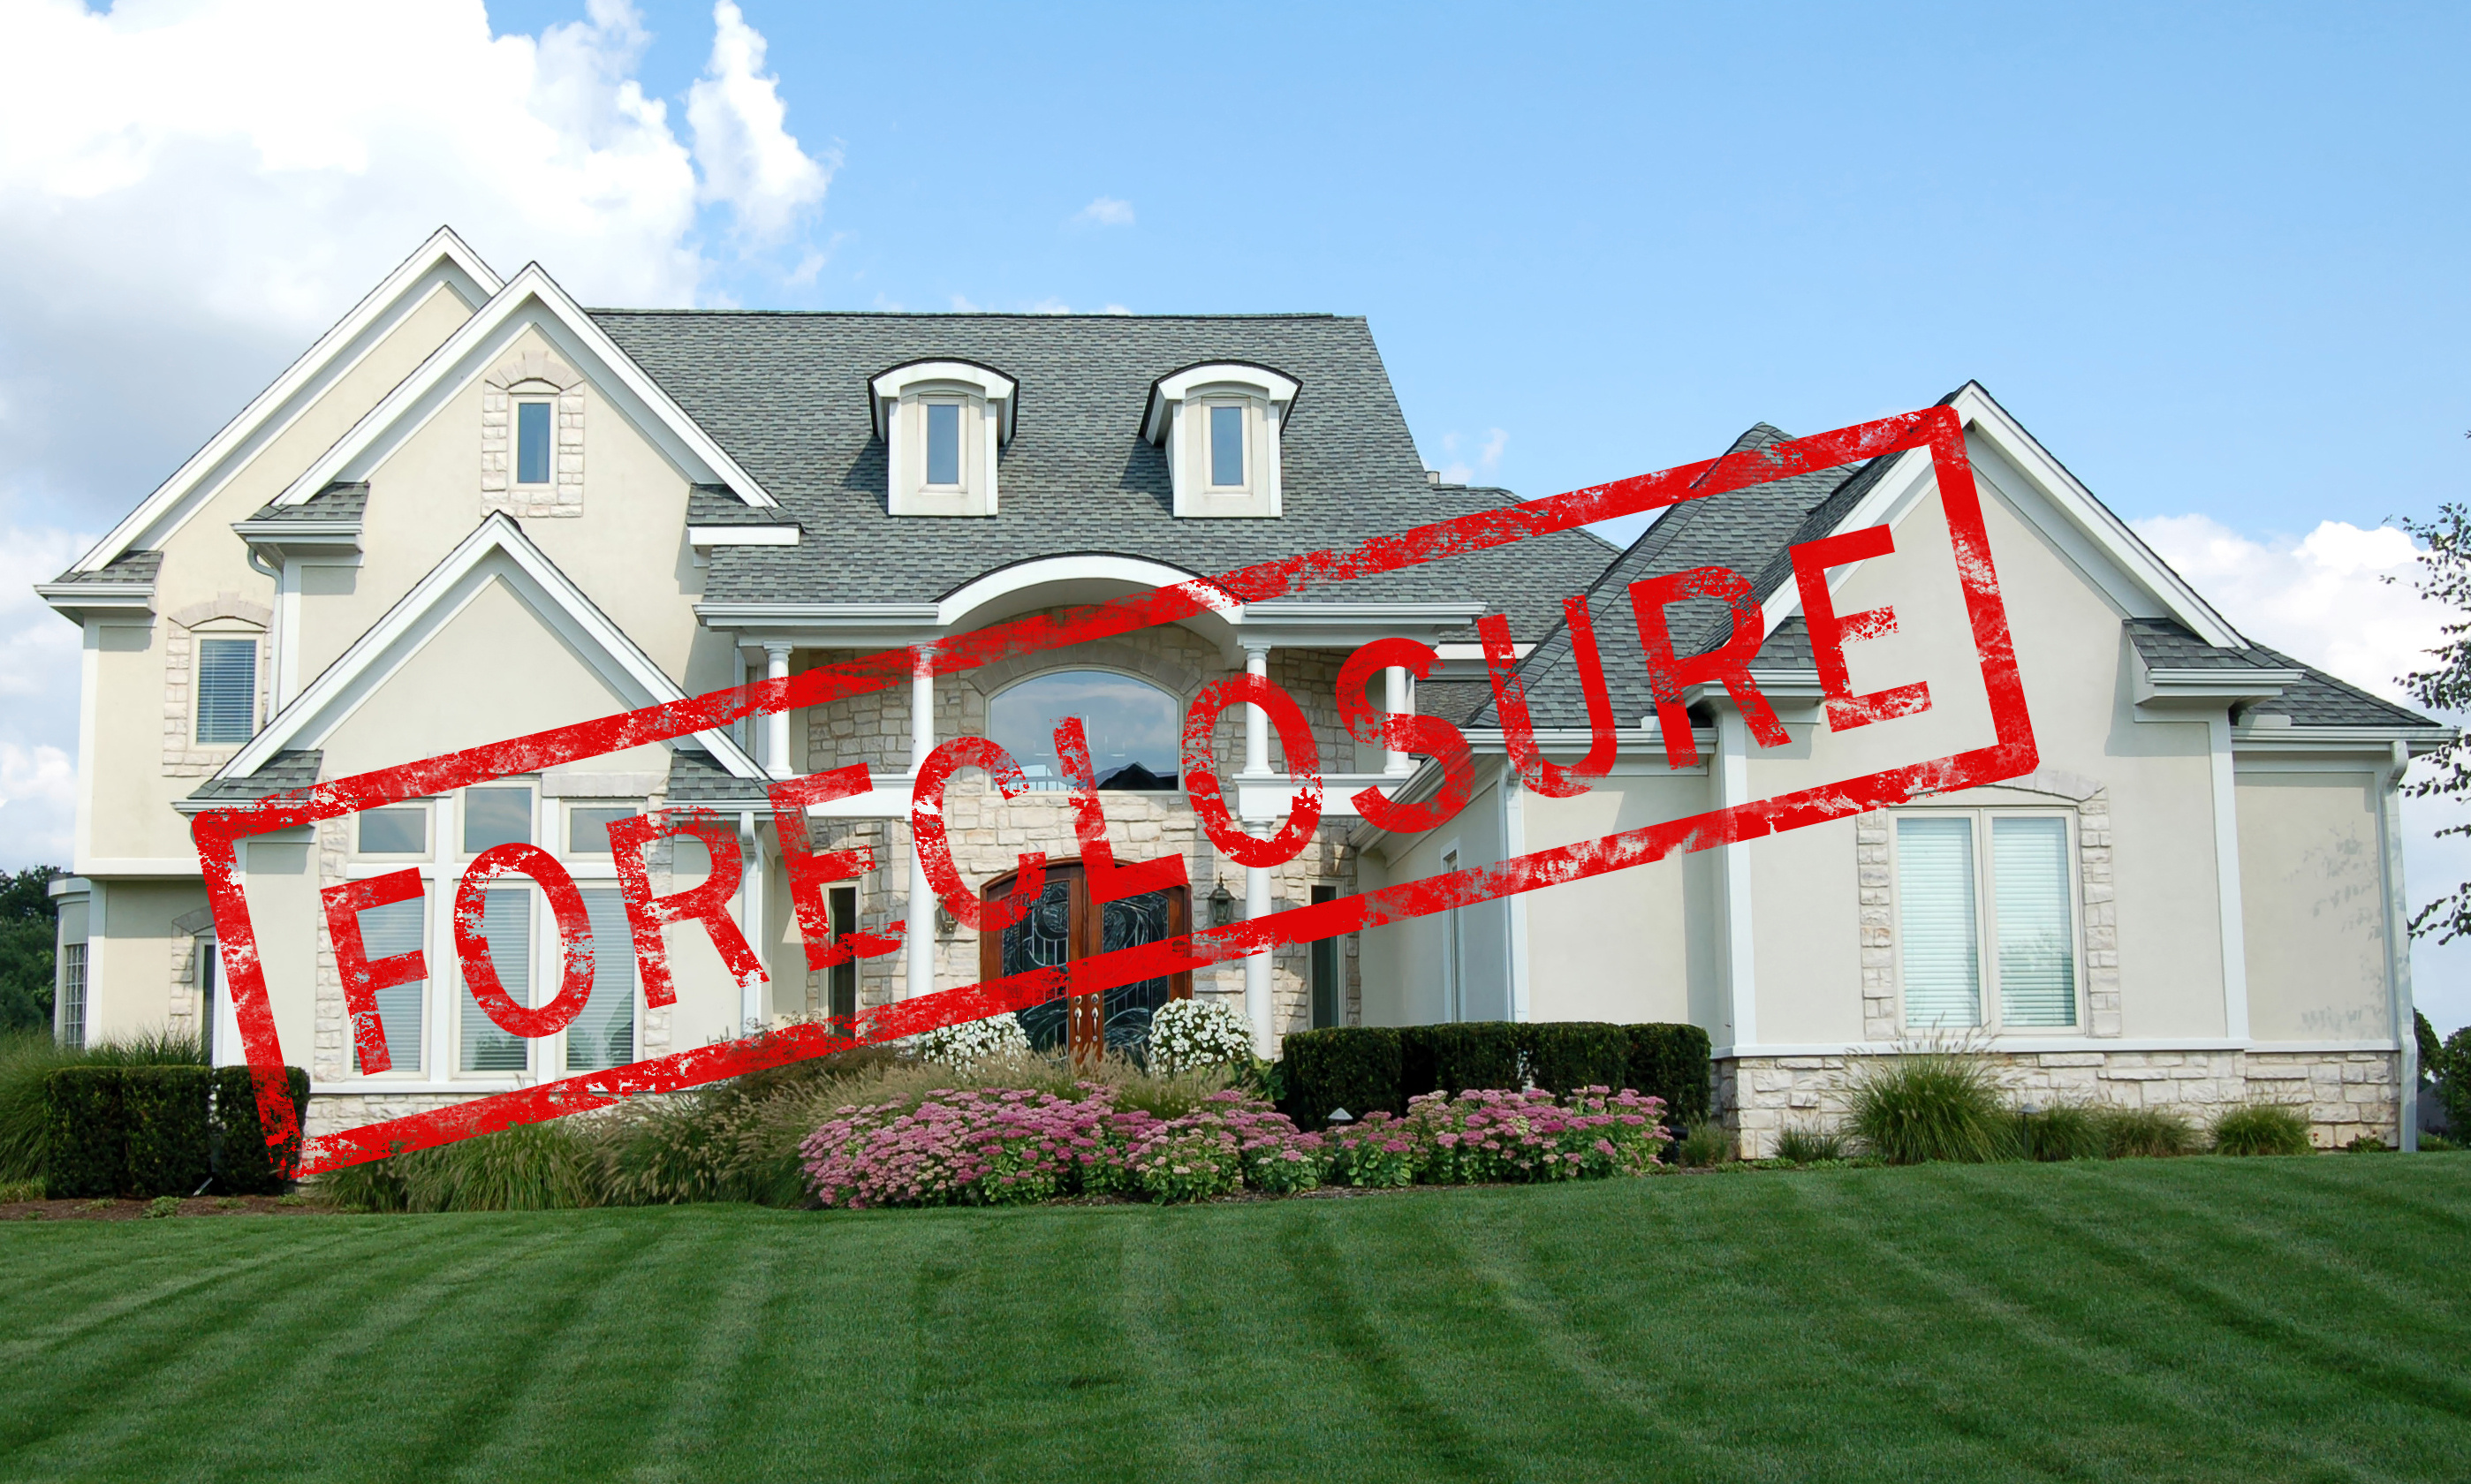 Call Maffeo-Kelly Appraisal Co., LLC to order valuations for Monmouth foreclosures